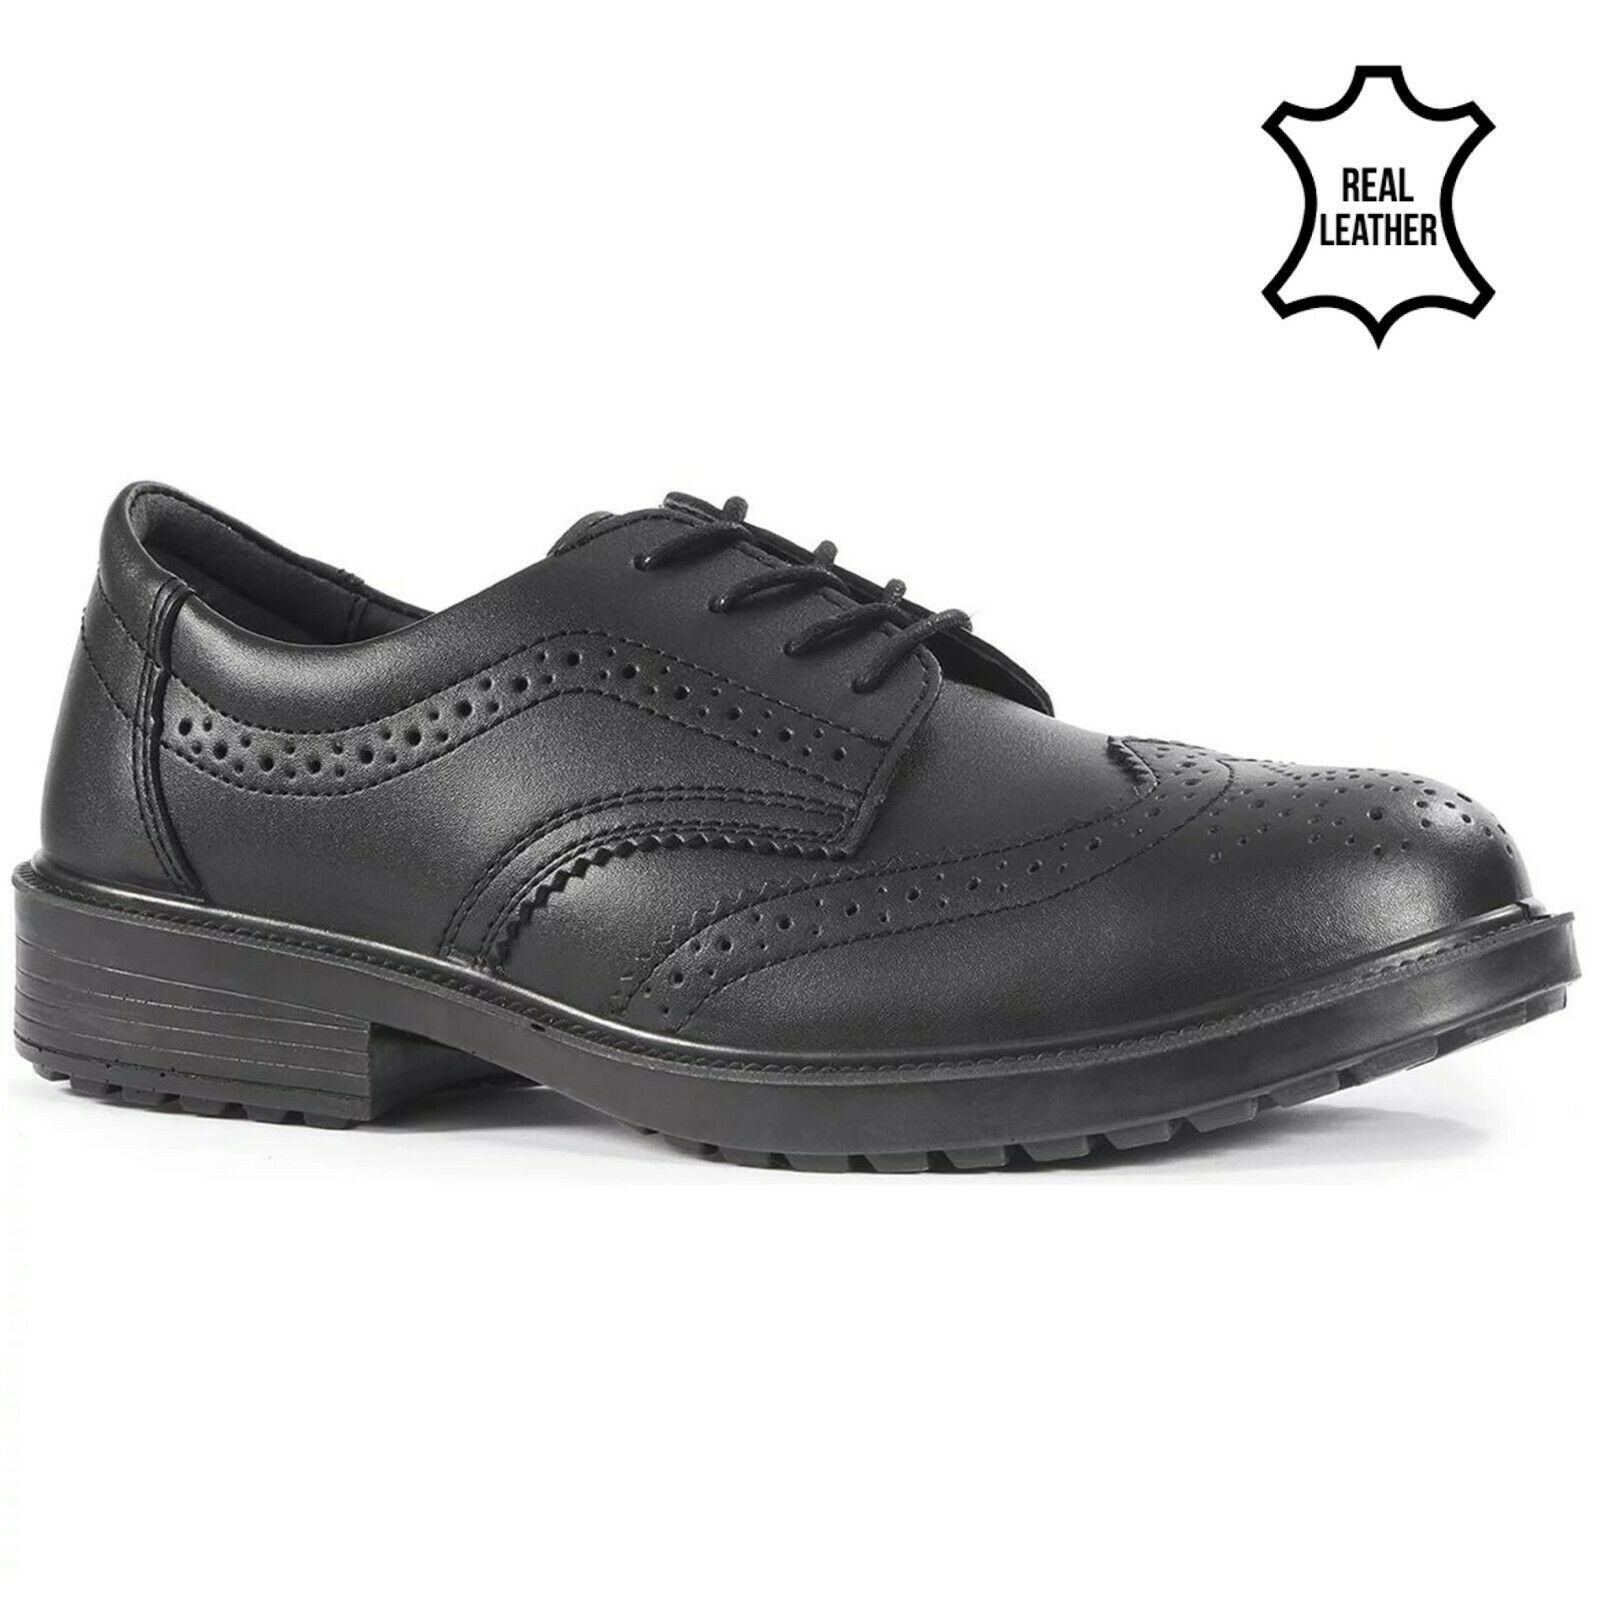 Are Steel Toe Shoes Formal